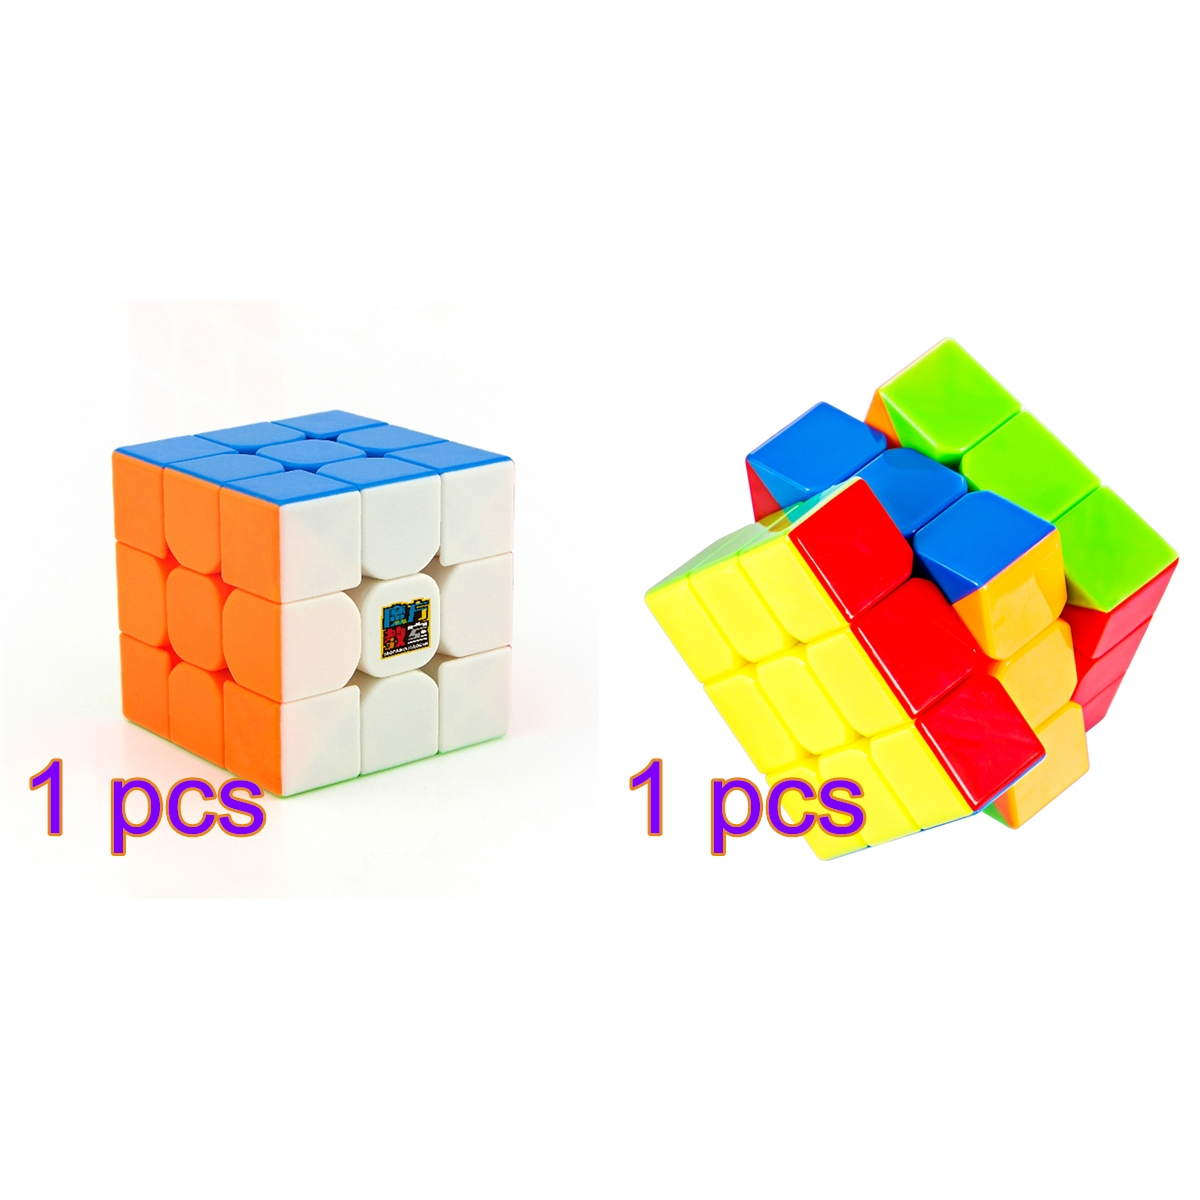 1pcs Cubing Classroom MF3RS 3x3 Magic Cube Set + 1pcs Cyclone Boys FeiWu Mini 3x3 Stickerless Speed New Cube 40mm 2019